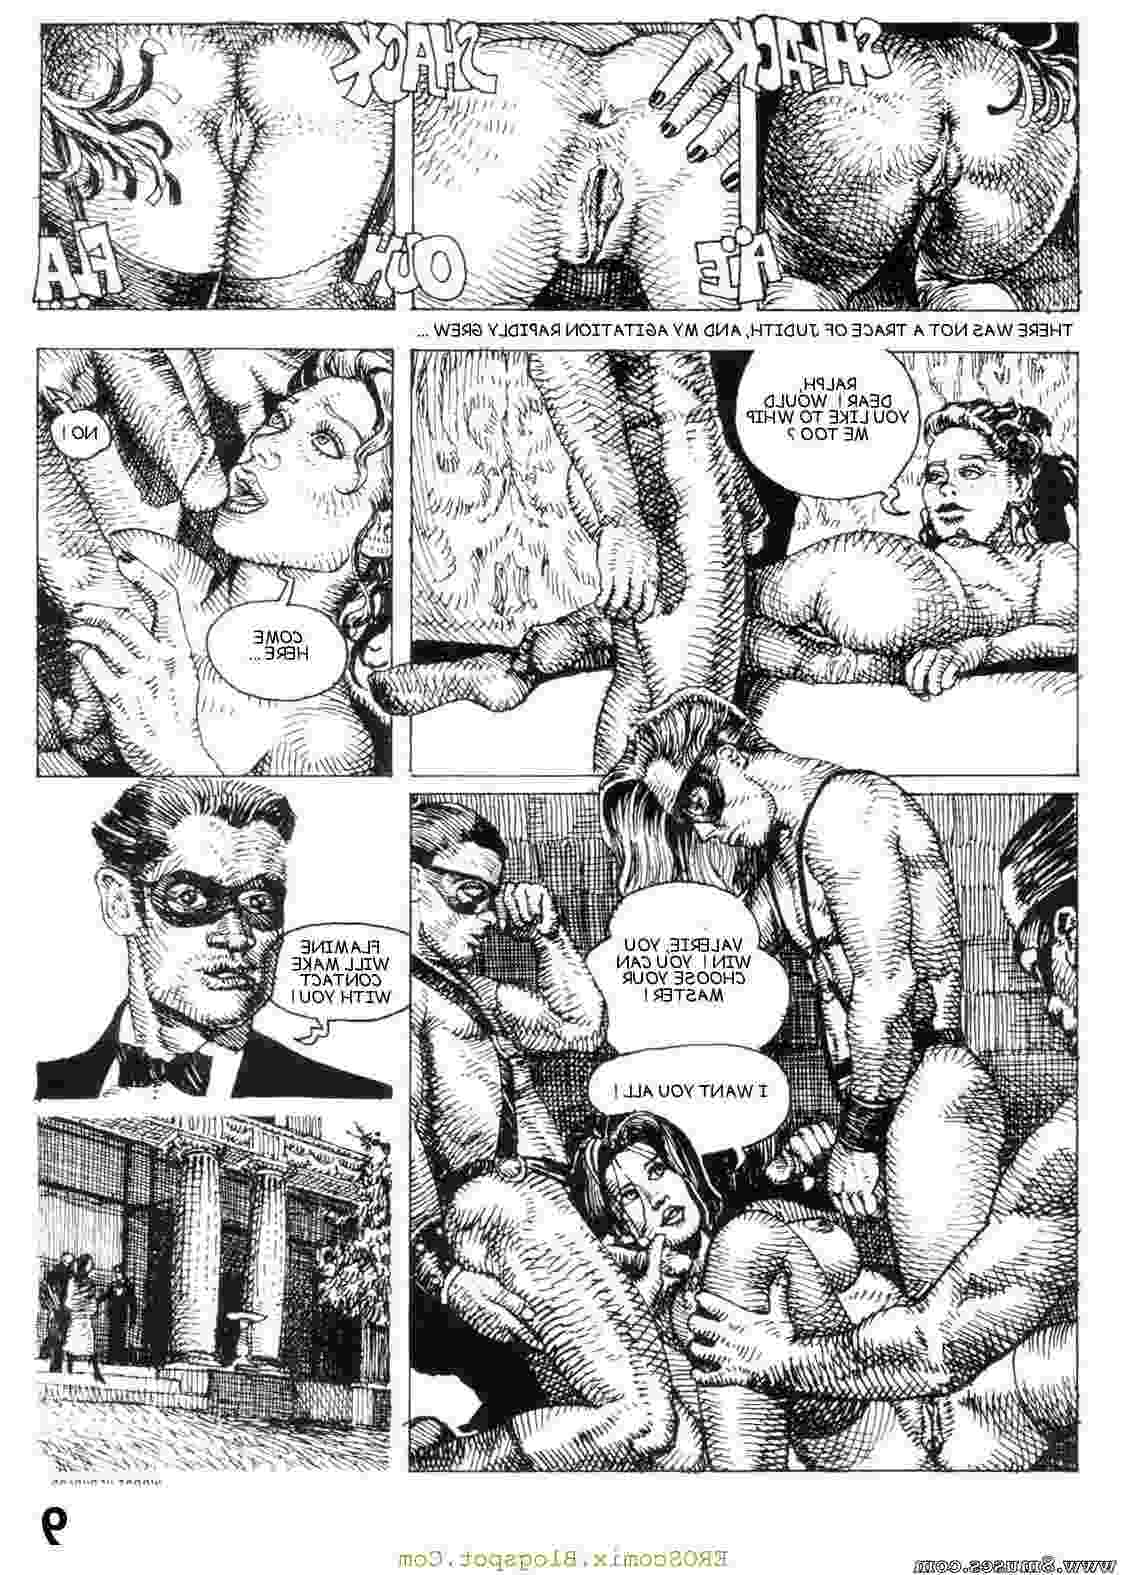 Bruno-Coq-Comics/Secret-Society Secret_Society__8muses_-_Sex_and_Porn_Comics_10.jpg